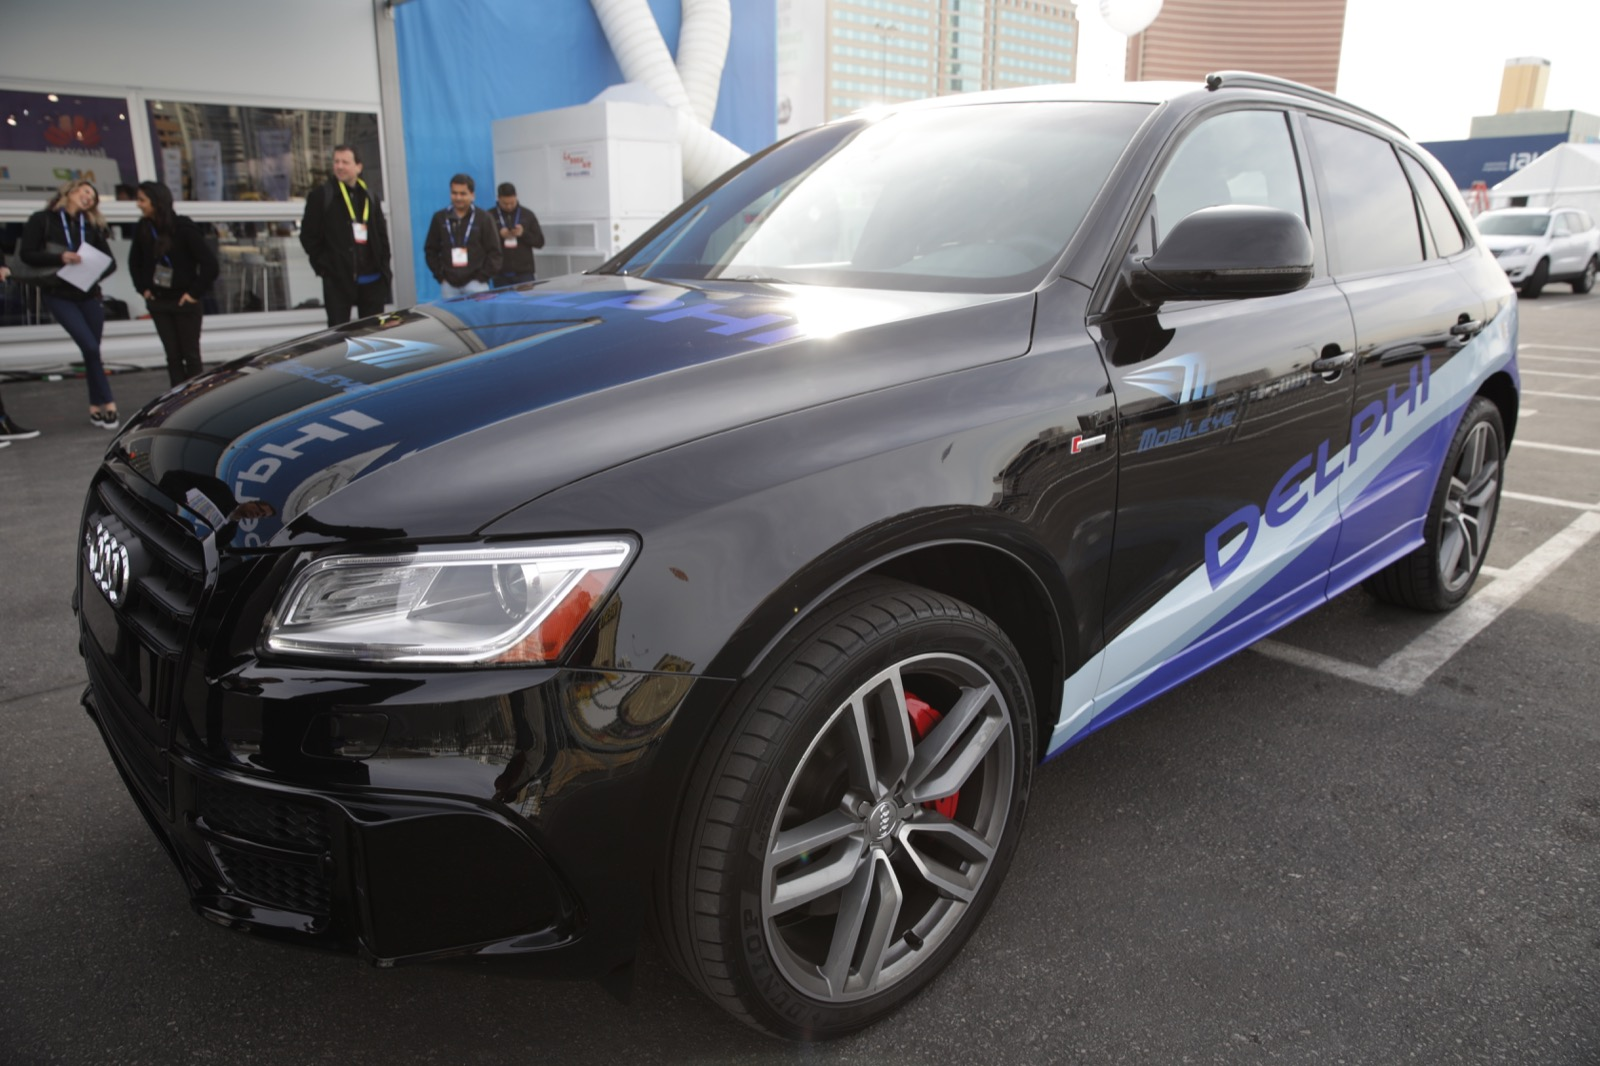 Delphi's autonomous Audi demonstration vehicle is one car testing on Nevada's roads.